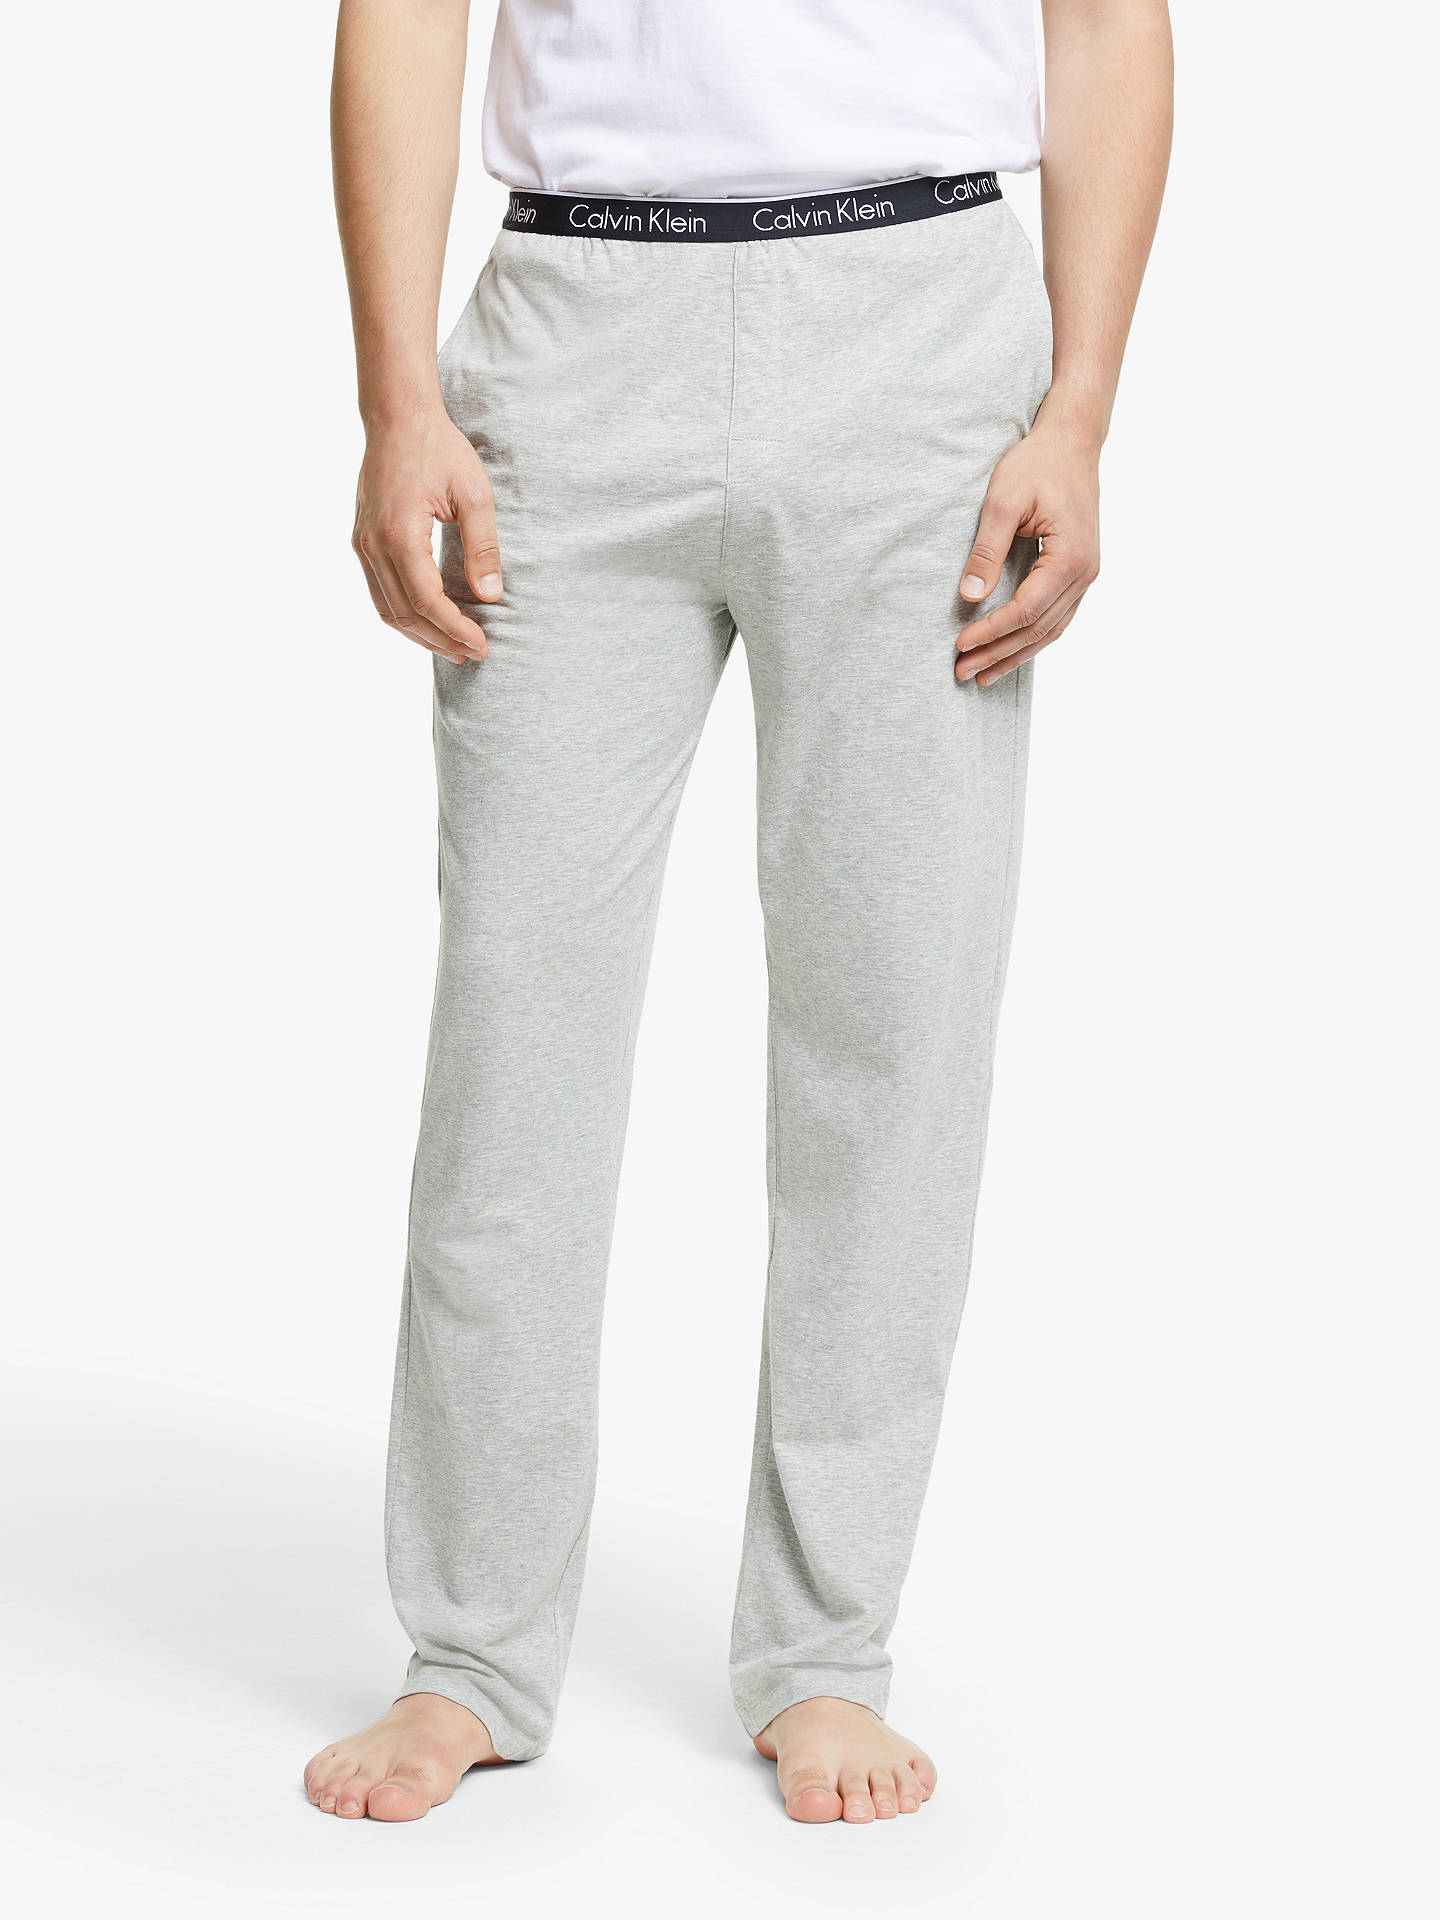 5a5026df86959 Buy Calvin Klein Jersey Cotton Lounge Pants, Grey, S Online at  johnlewis.com ...